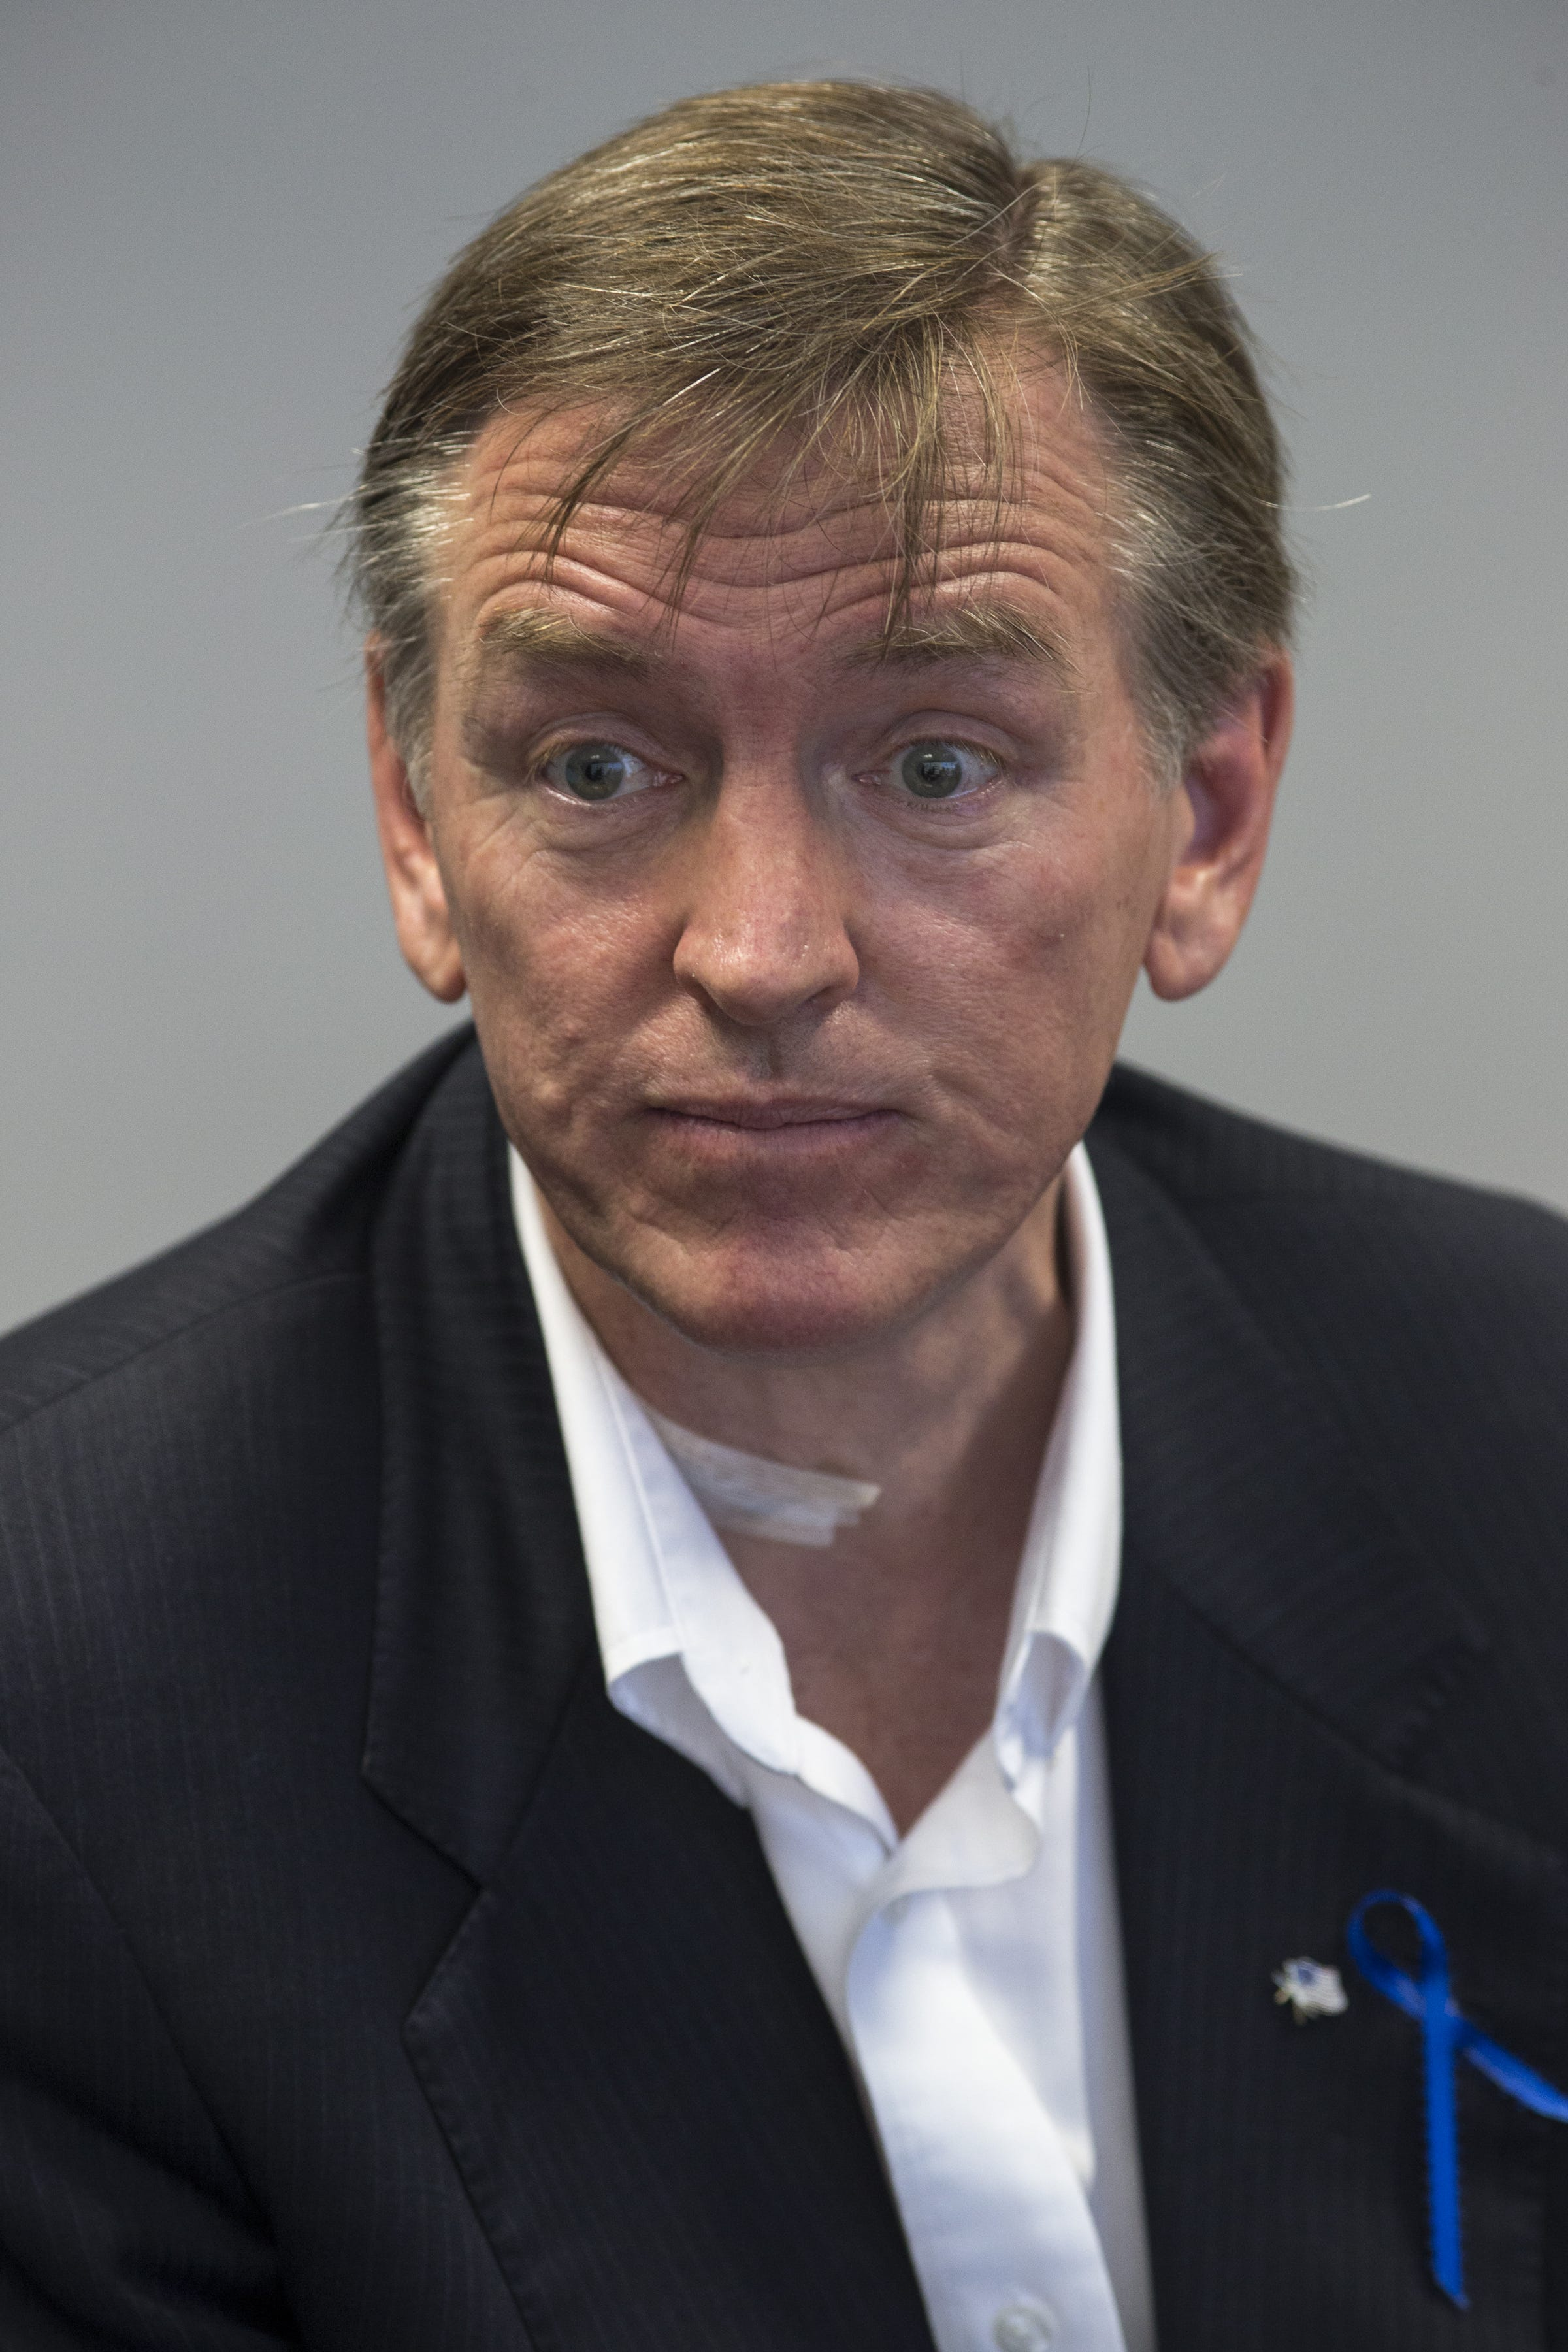 azcentral.com - EJ Montini, The Arizona Republic - Rep. Paul Gosar gets caught in Prescott cozying up to a hate group member